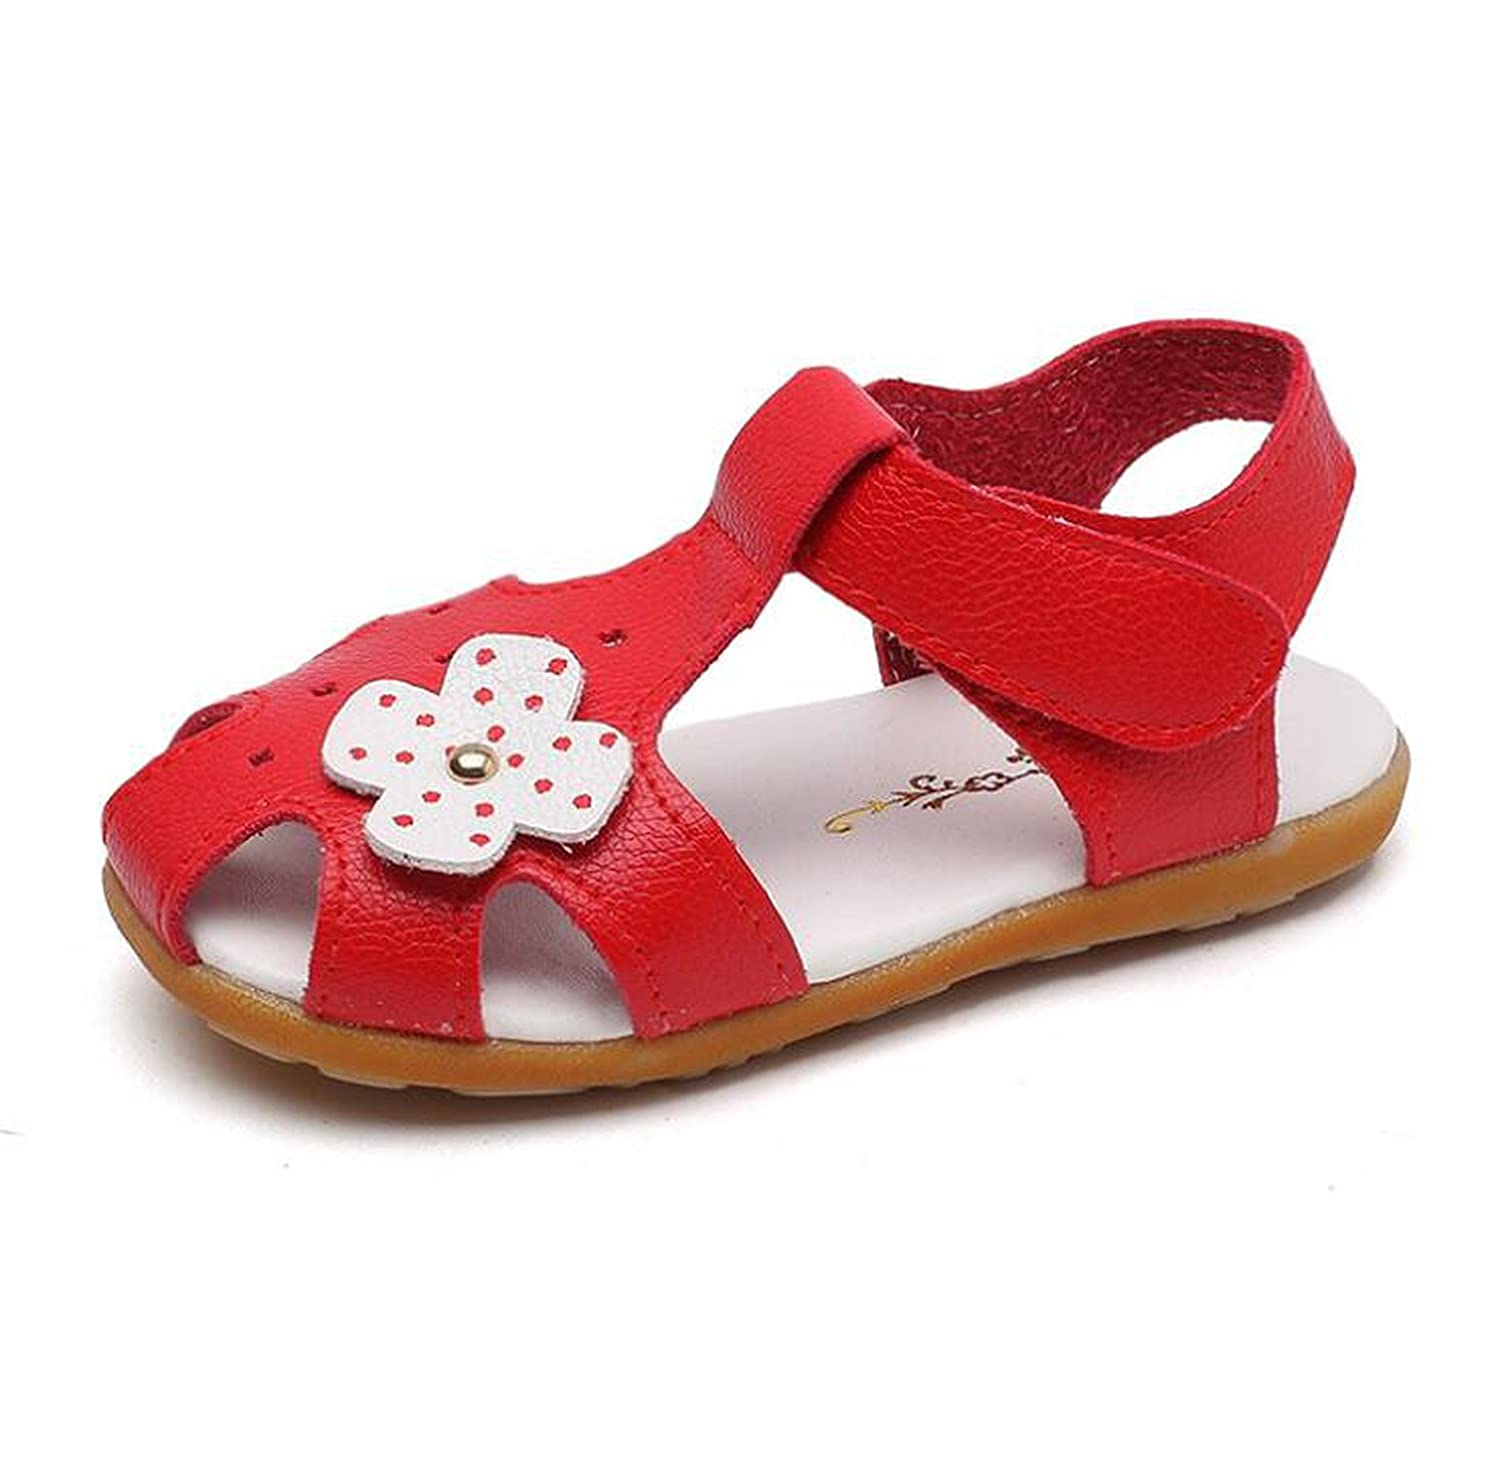 Kinggolder Baby Toddler Girl Sandals Cute Sweet Flowers Girls Sandals Summer Shoes Red 10.5